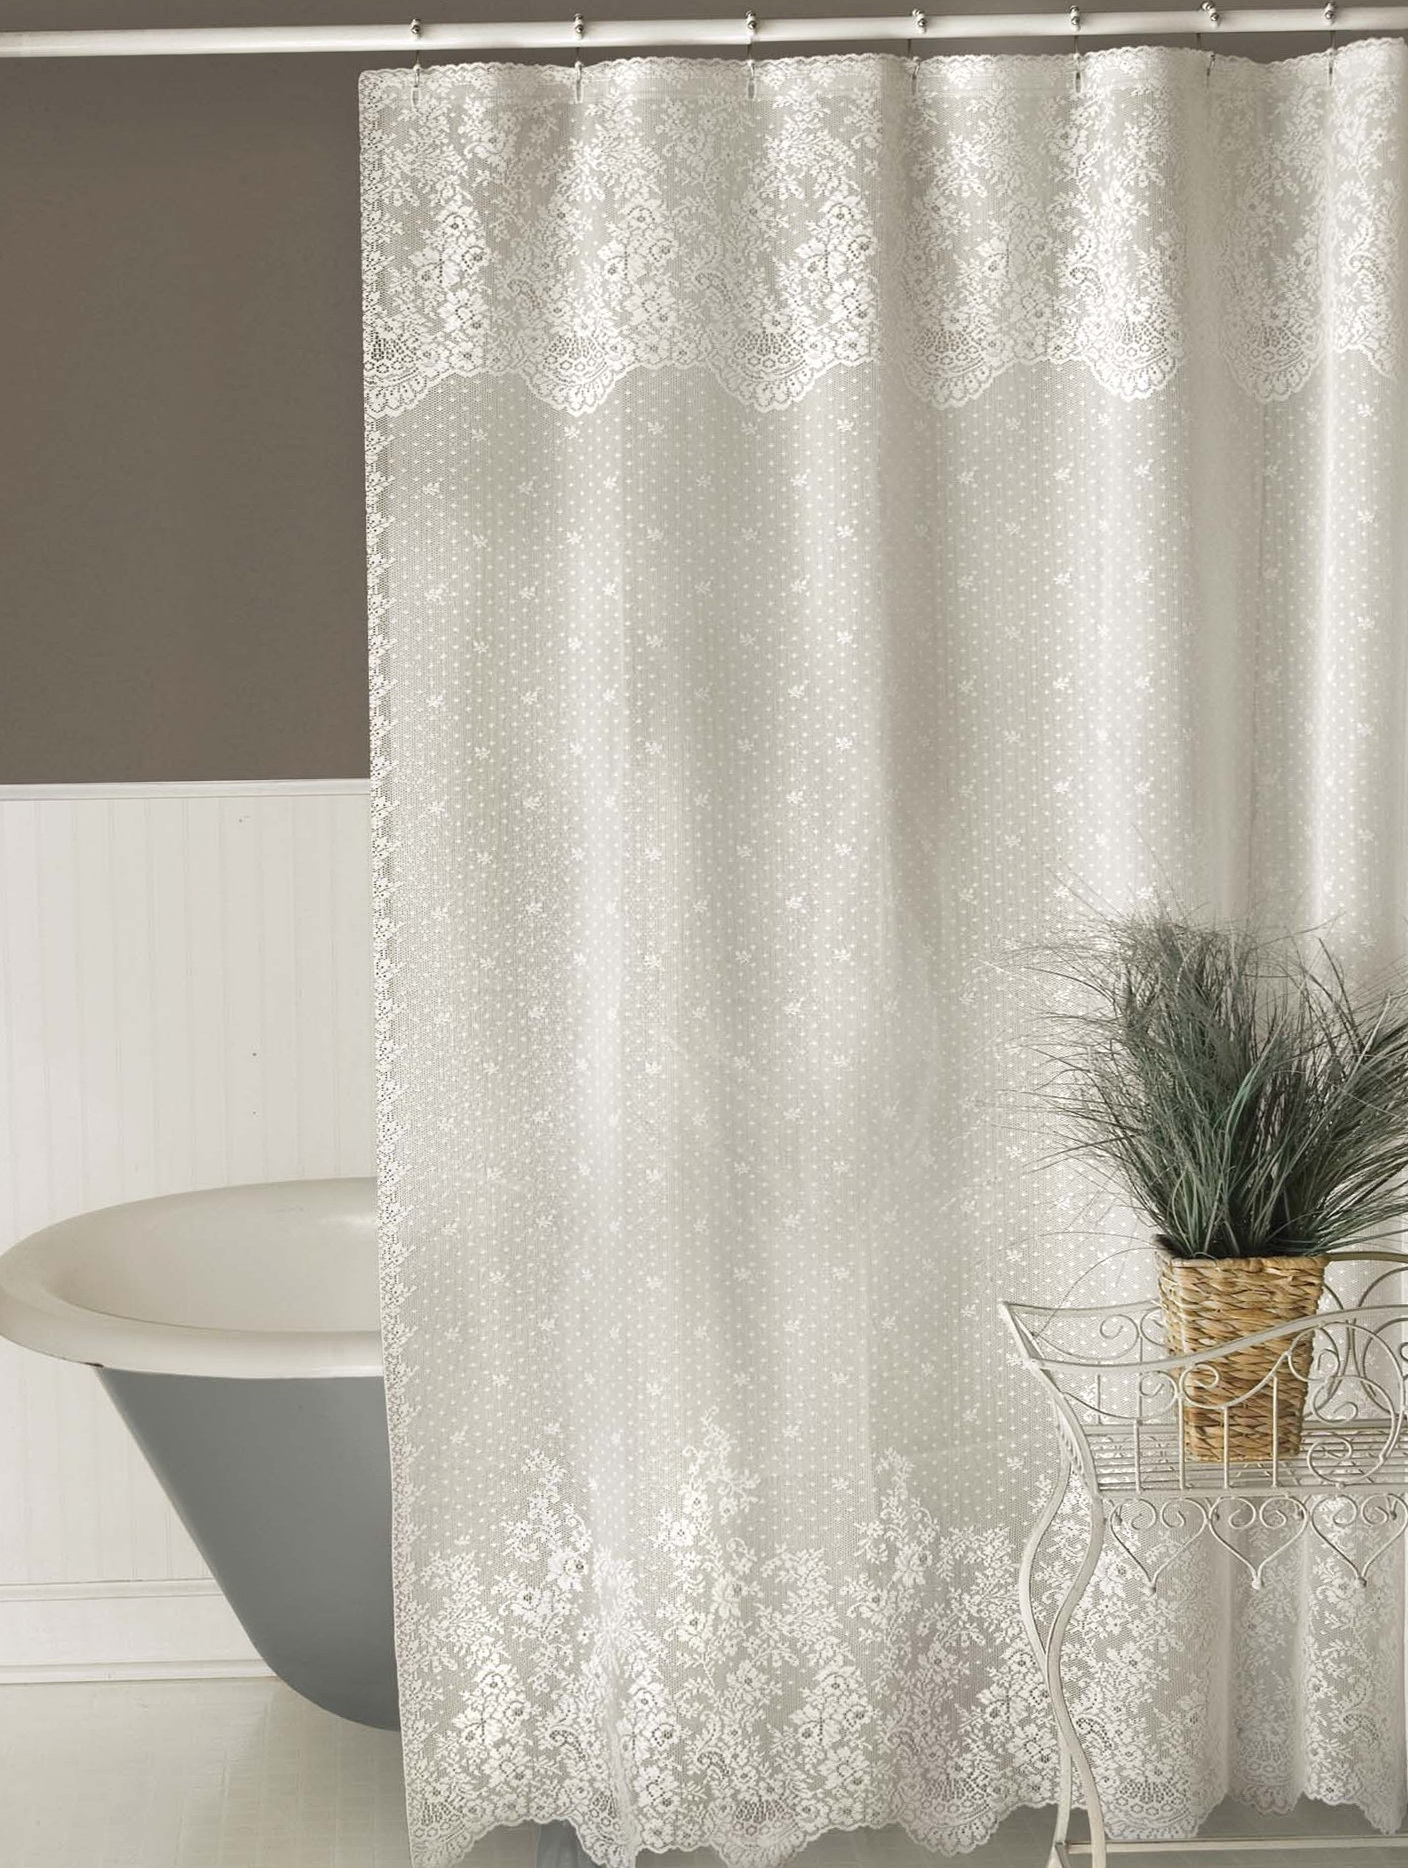 Attirant ... White Lace Shower Curtains ...